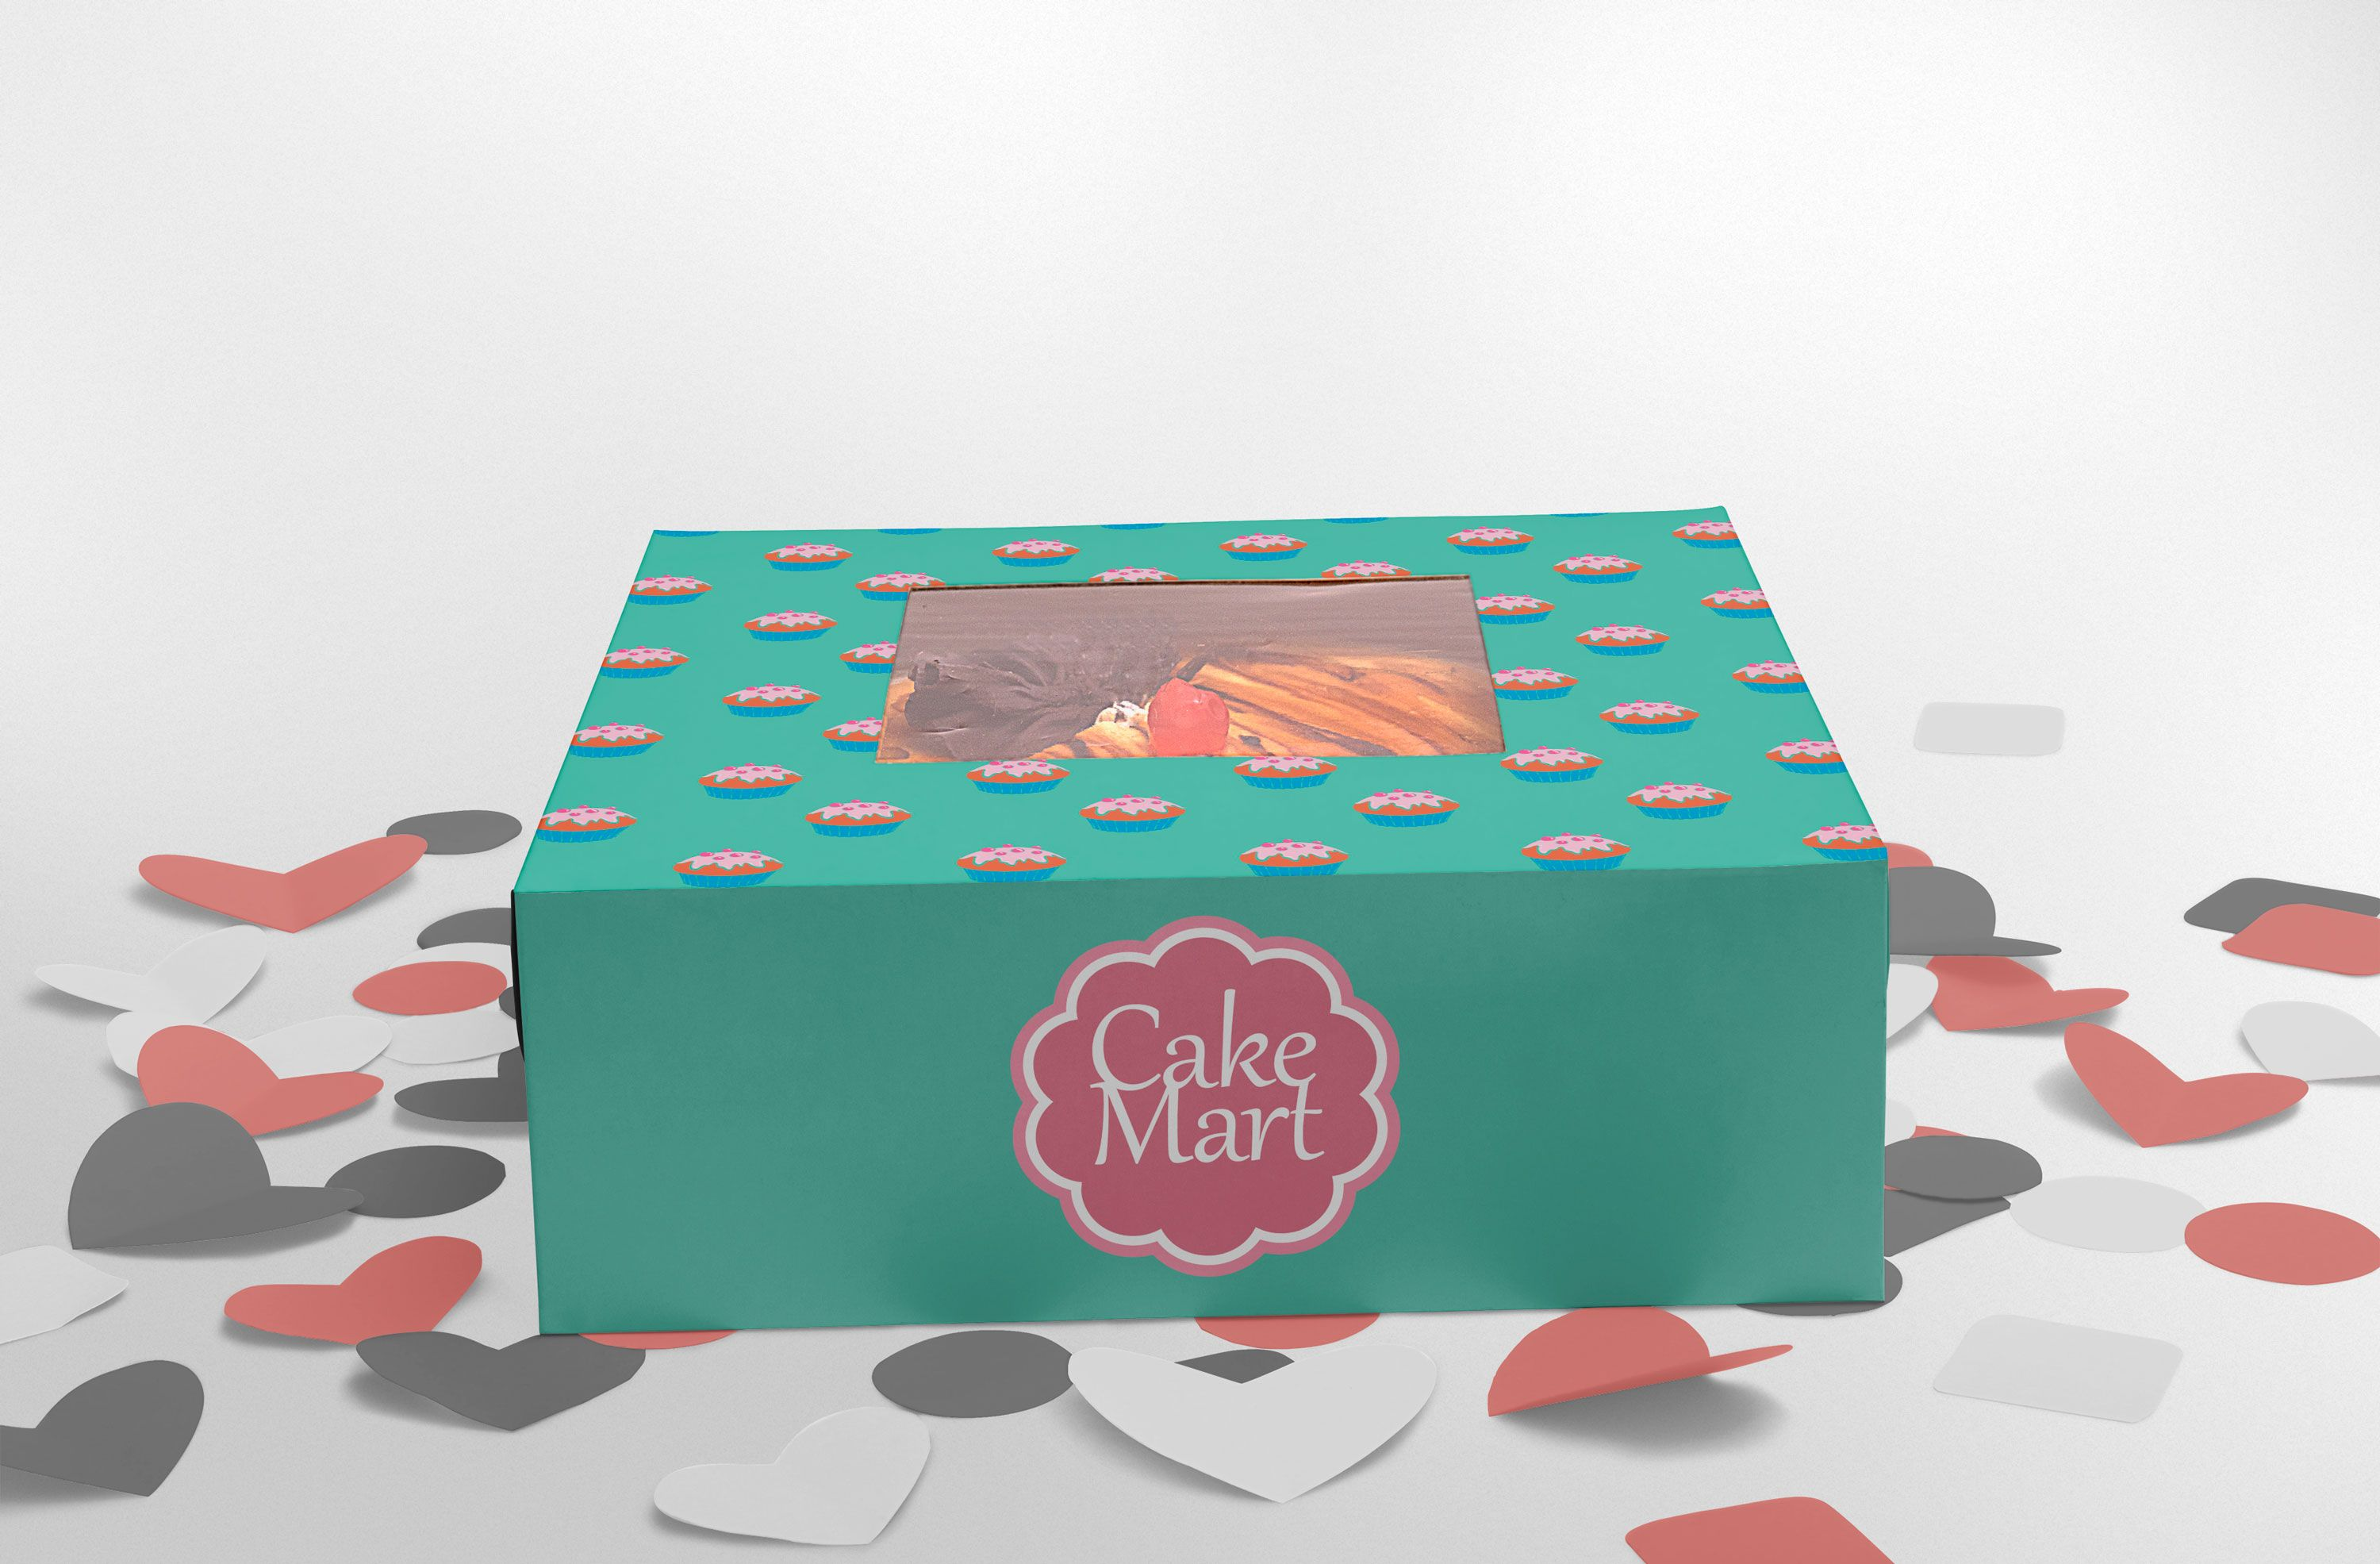 Download In Order To Help You Present A Logo Design Mockup To Your Client In A Super Polished Way We Ve Gathered The Free Box Mockup Logo Design Mockup Cake Packaging